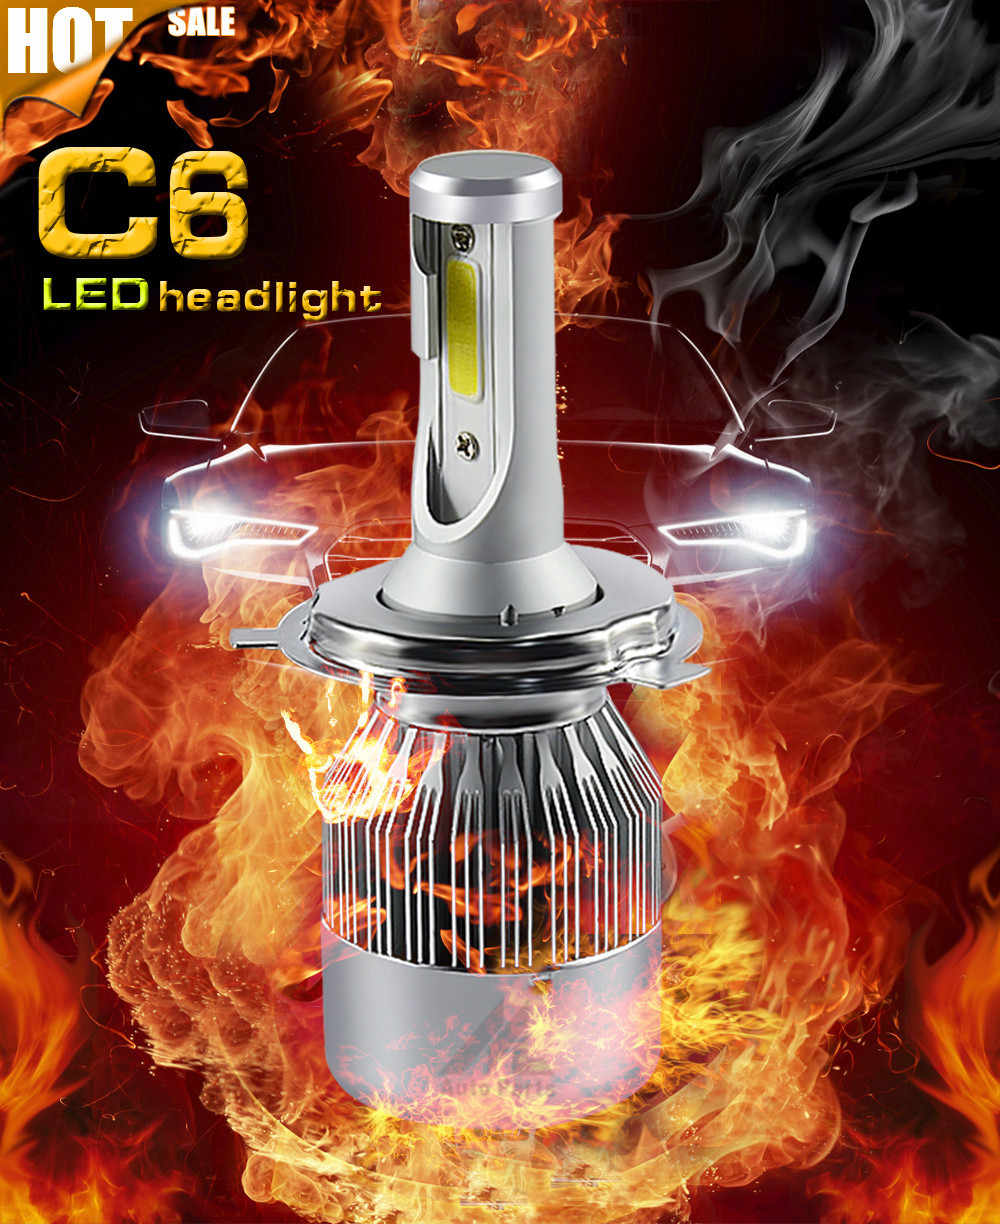 XENPLUS Super bright Led bulbs H7 110W 13200lm 12V Cree XHP70 Chips L7 LED headlights H4 H11 D2S HB3 HB4 9004 9007 H13 lamp